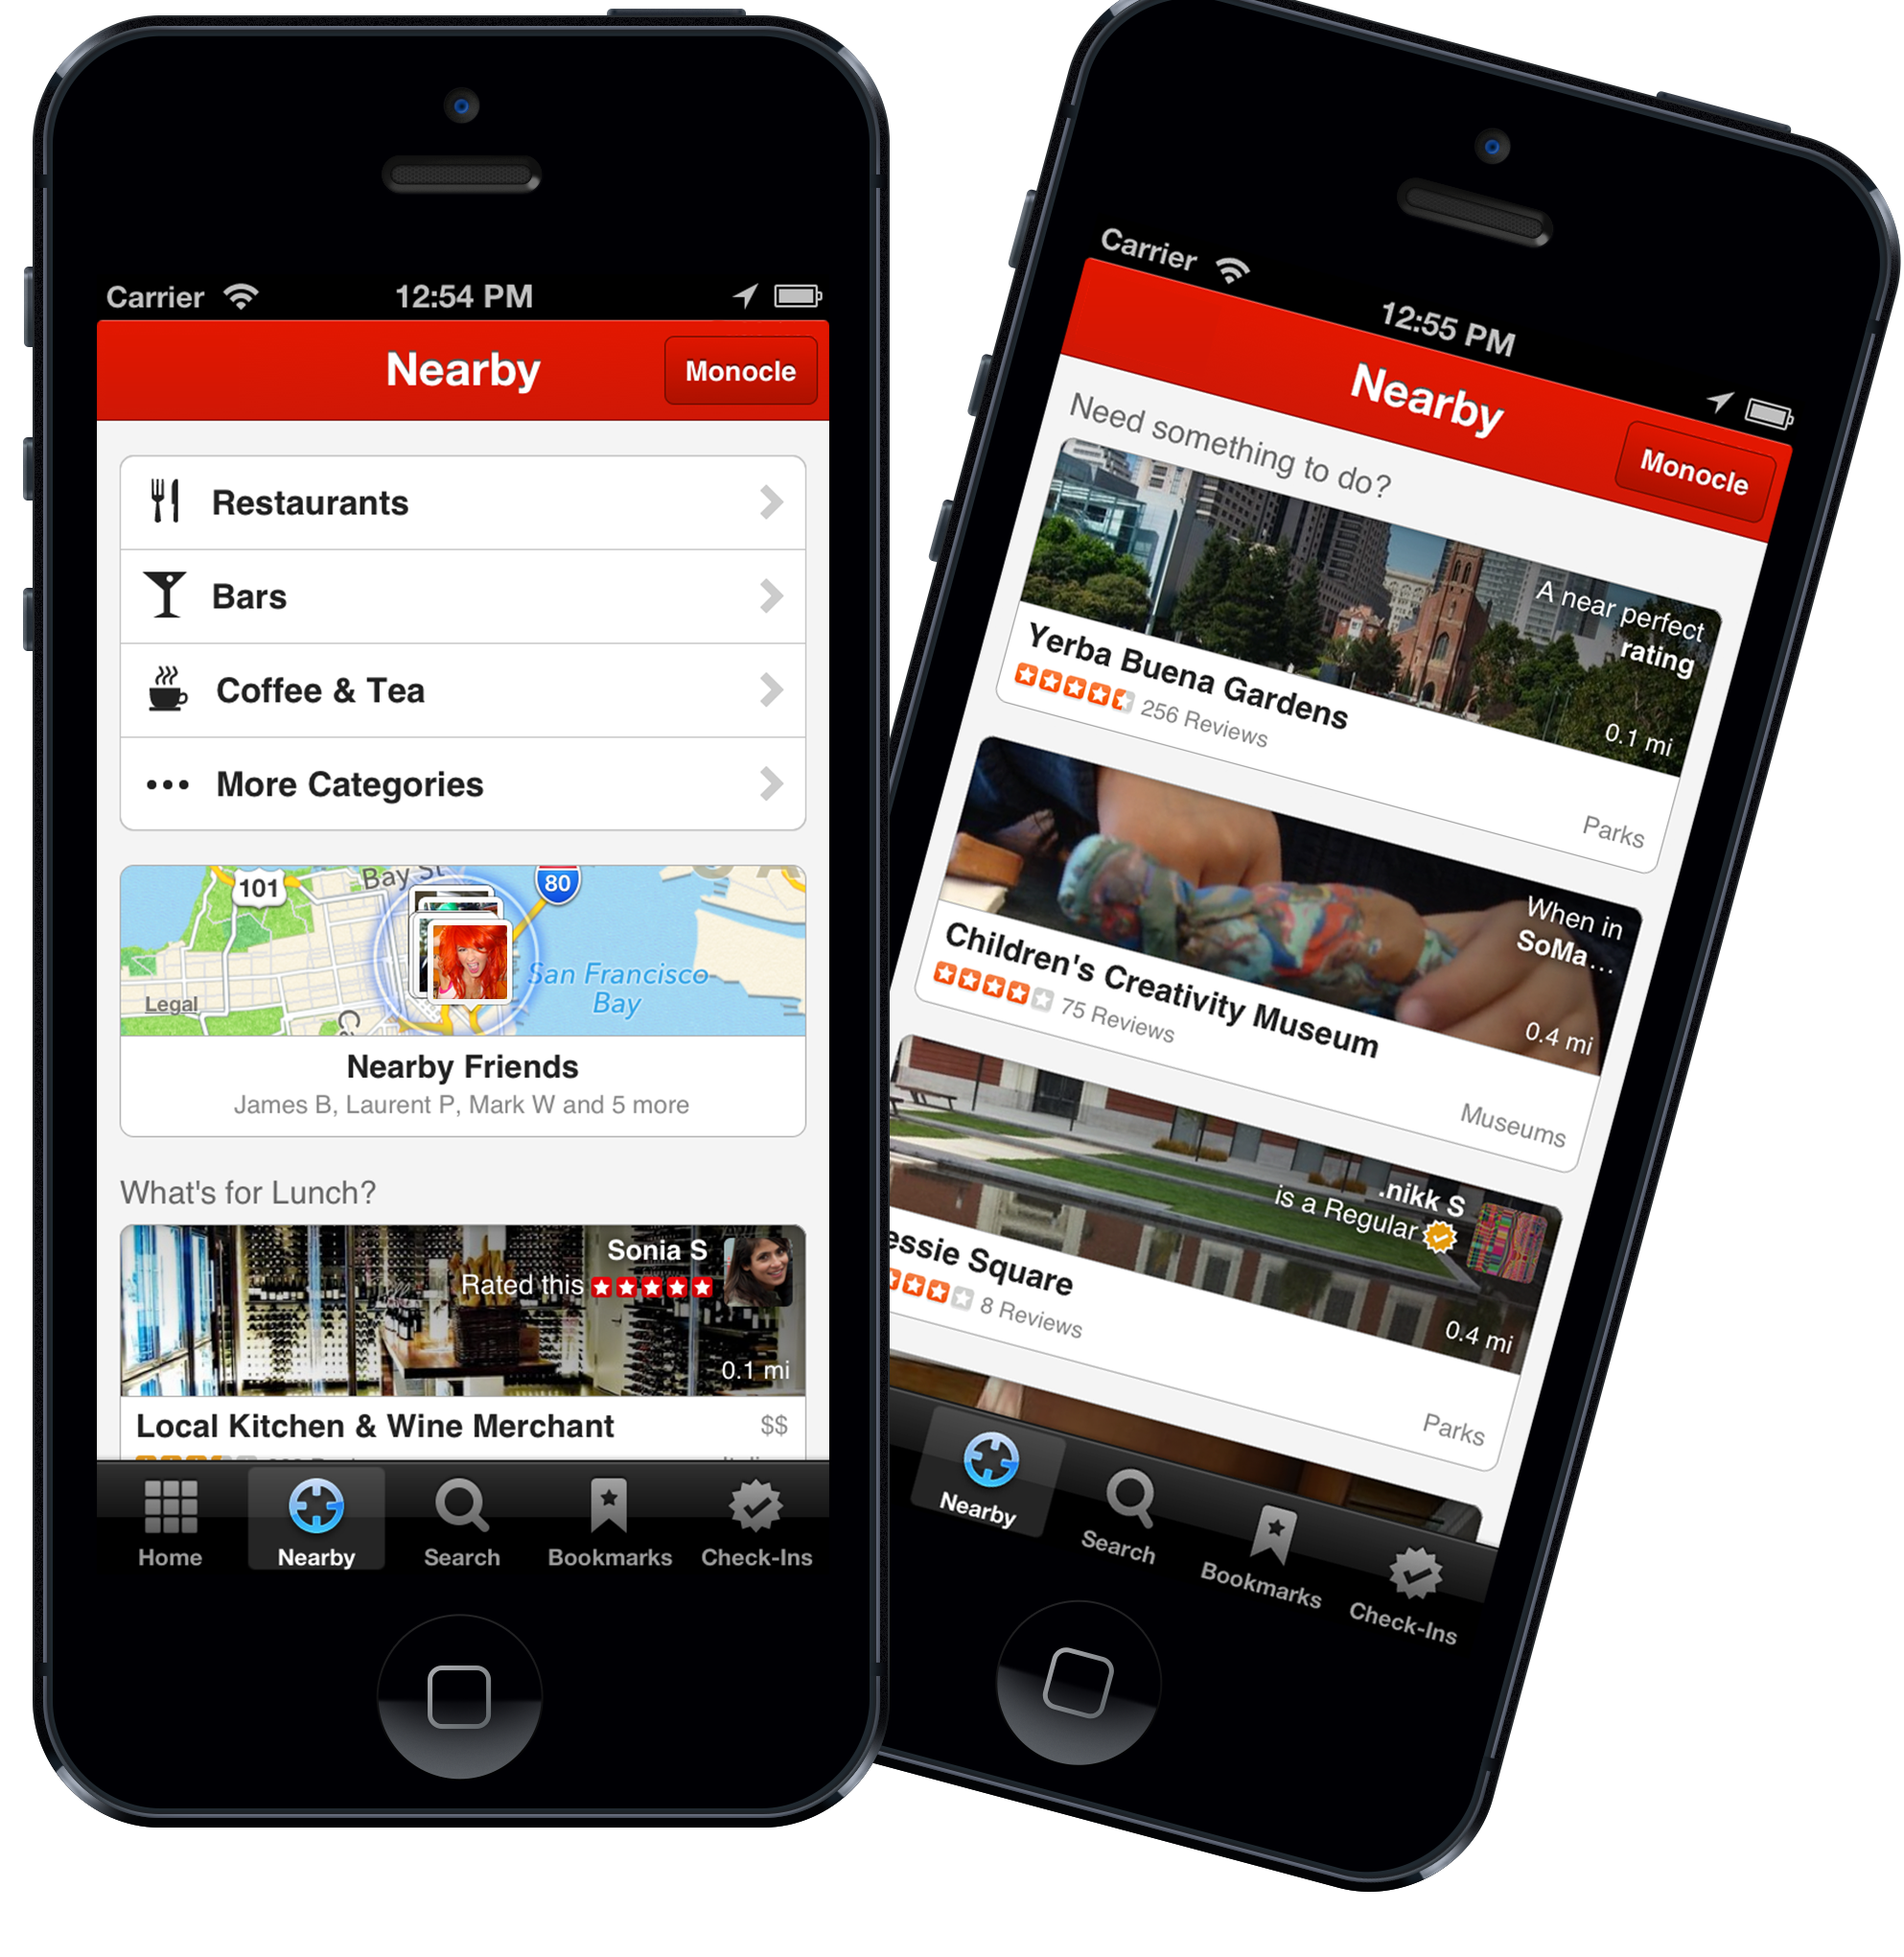 6a00d83452b44469e201901d3ac85e970b Yelp revamps Nearby feature for iOS with suggestions based on location, check ins, reviews, friends, and more